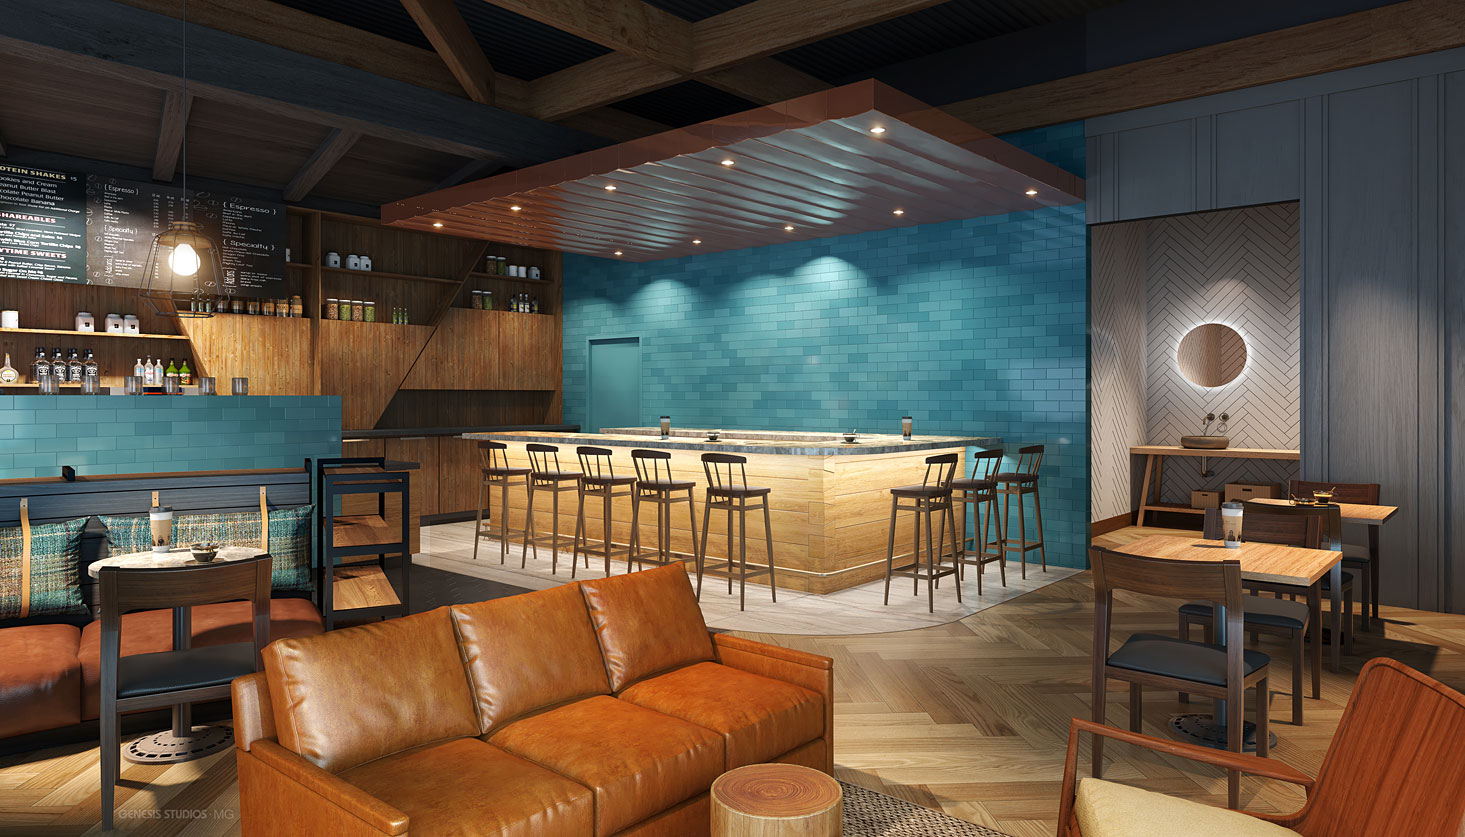 717210 Digital Photorealistic Architectural Renderings of Caribou Coffee Interior Lounge for Shea Design